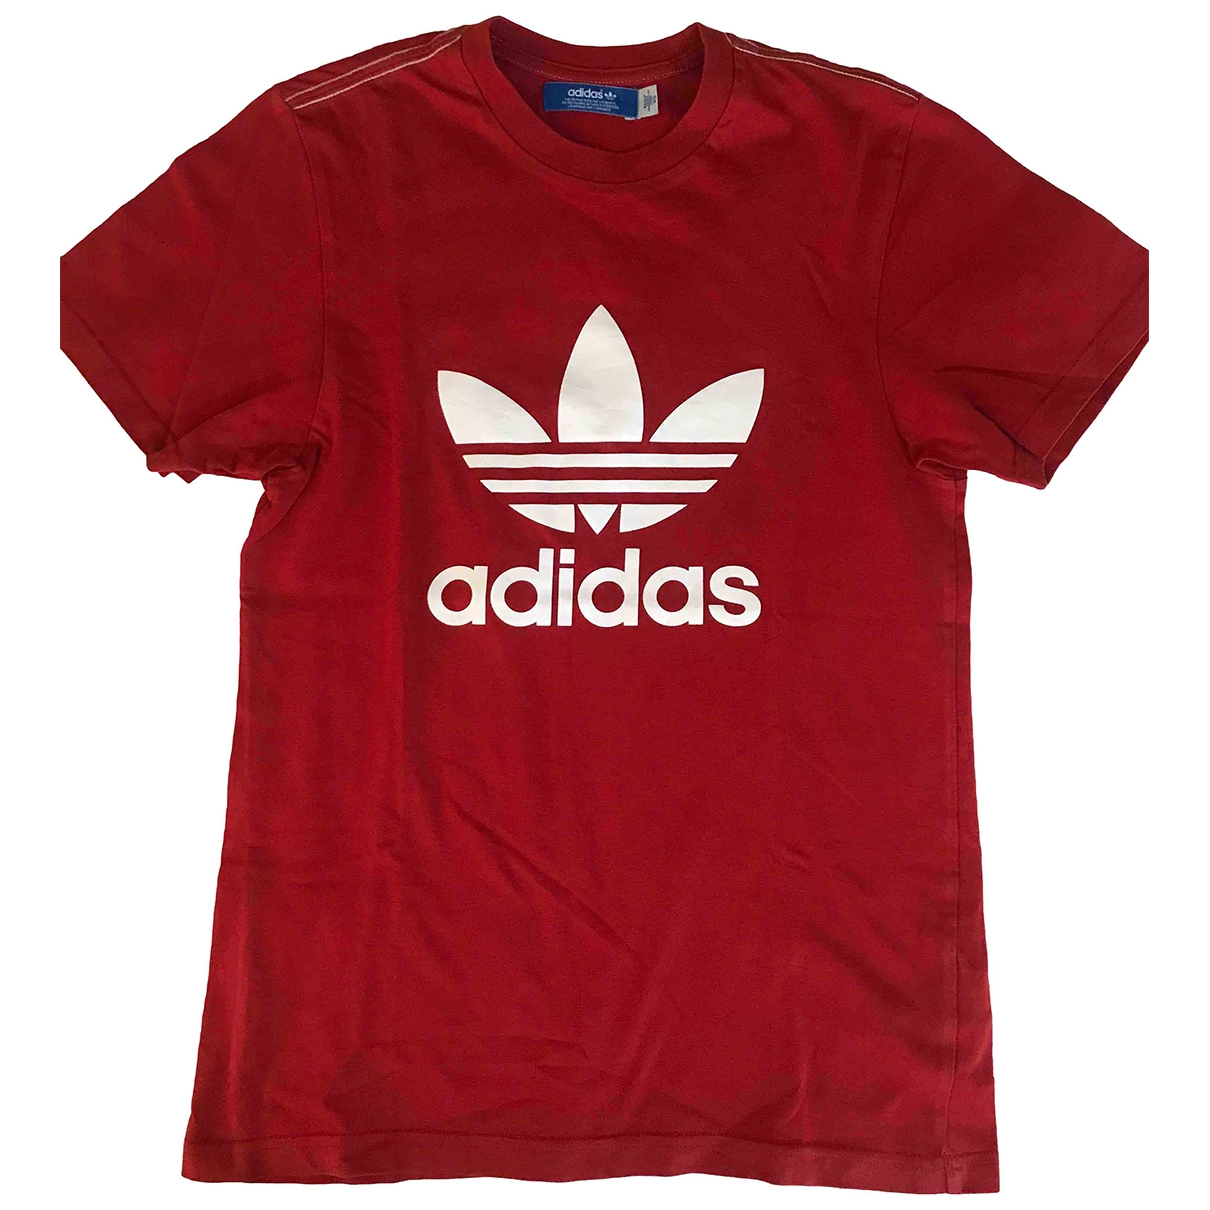 Adidas \N Red Cotton  top for Women XS International